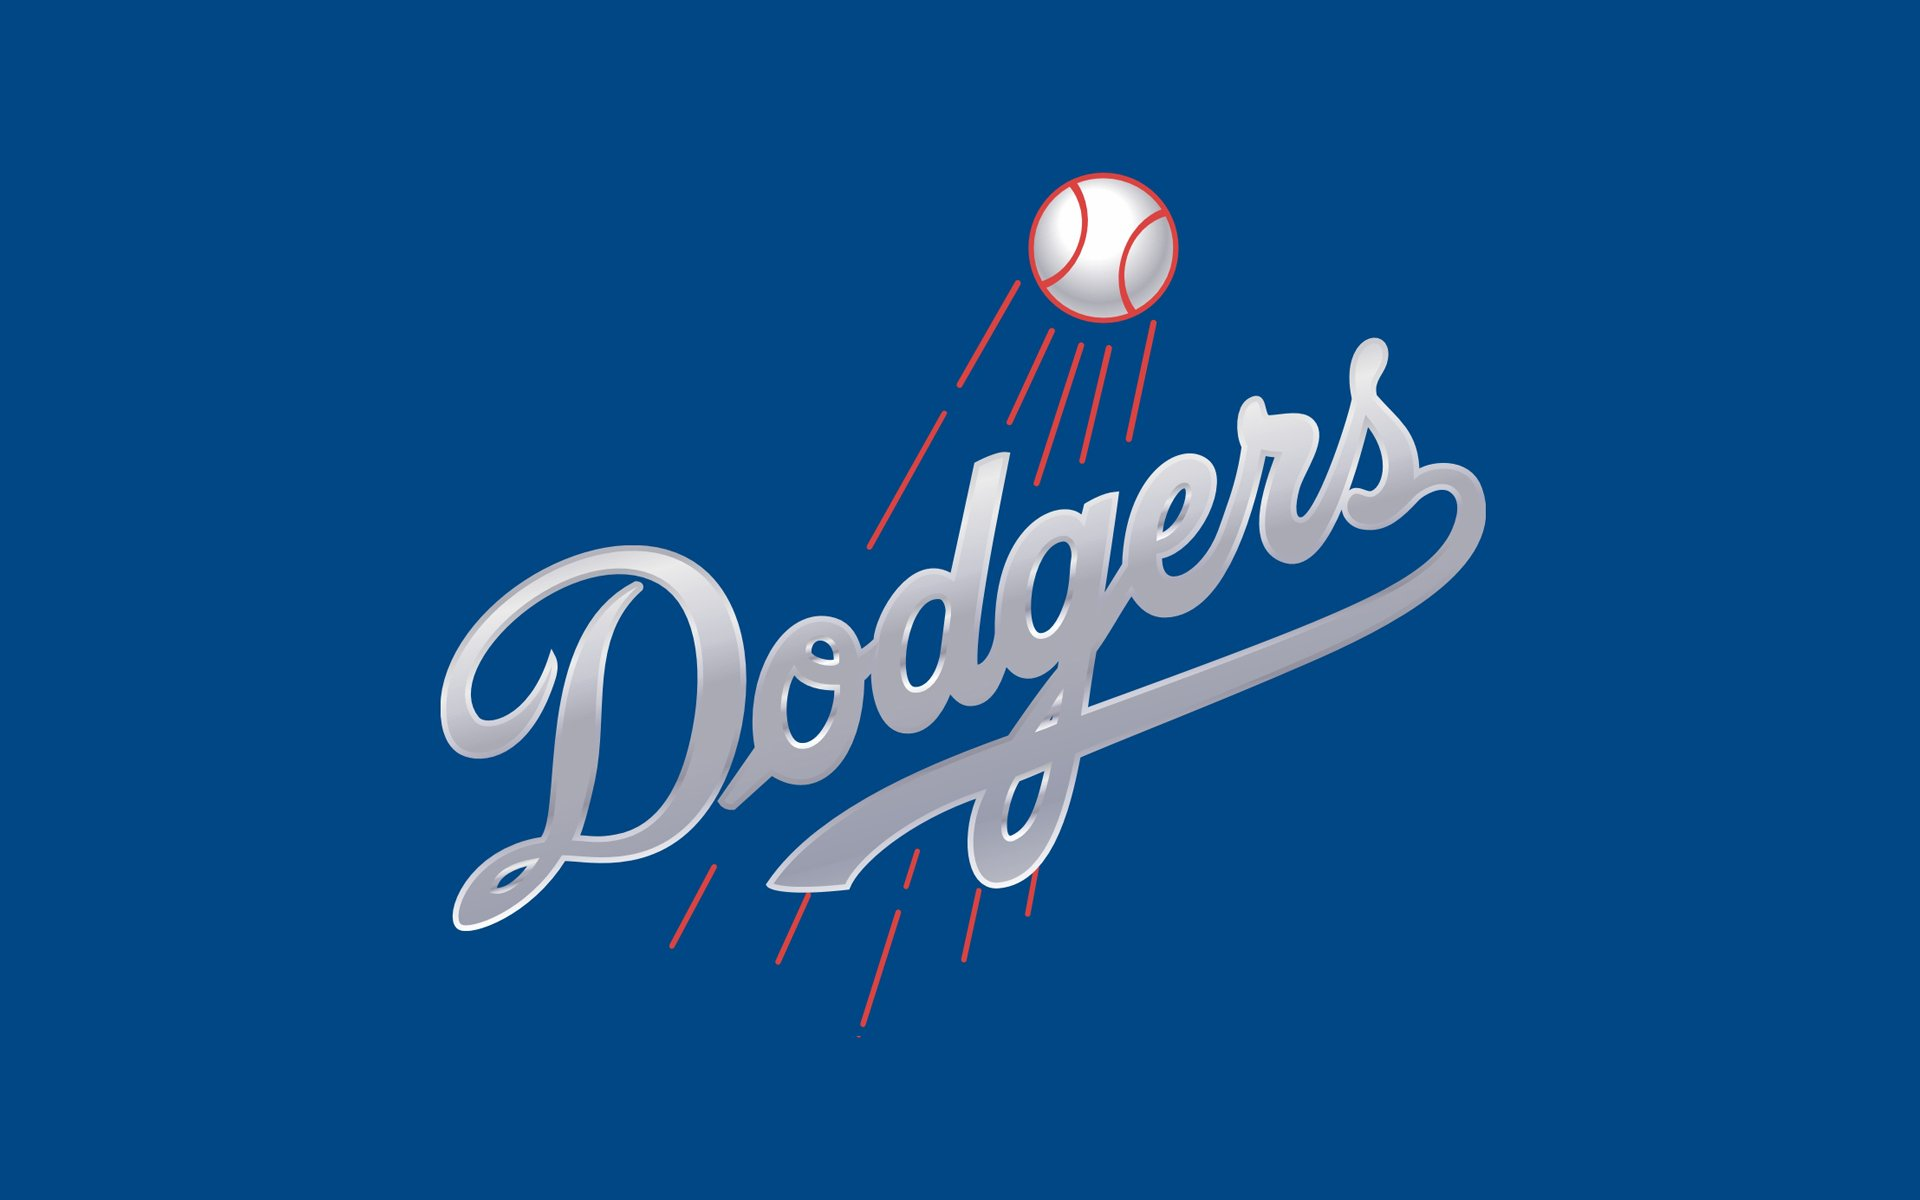 Cardinals Baseball Logo Vector Mlb los angeles dodgers logo 1920x1200